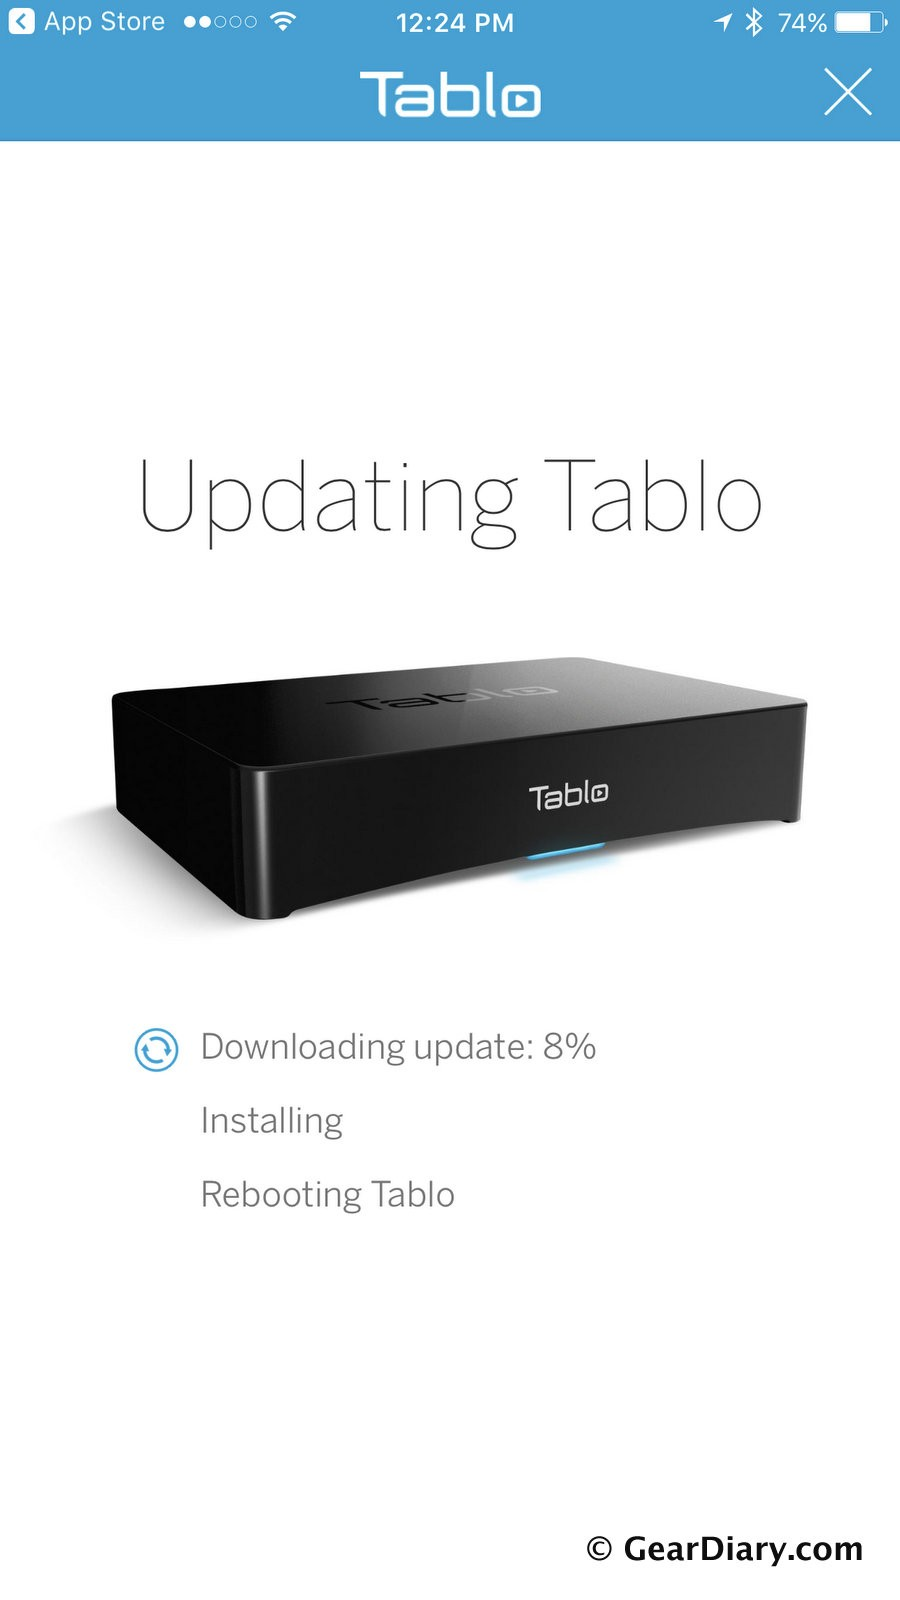 GearDiary Cutting the Cord?  The Tablo Dual OTA DVR Will Help Ease the Transition